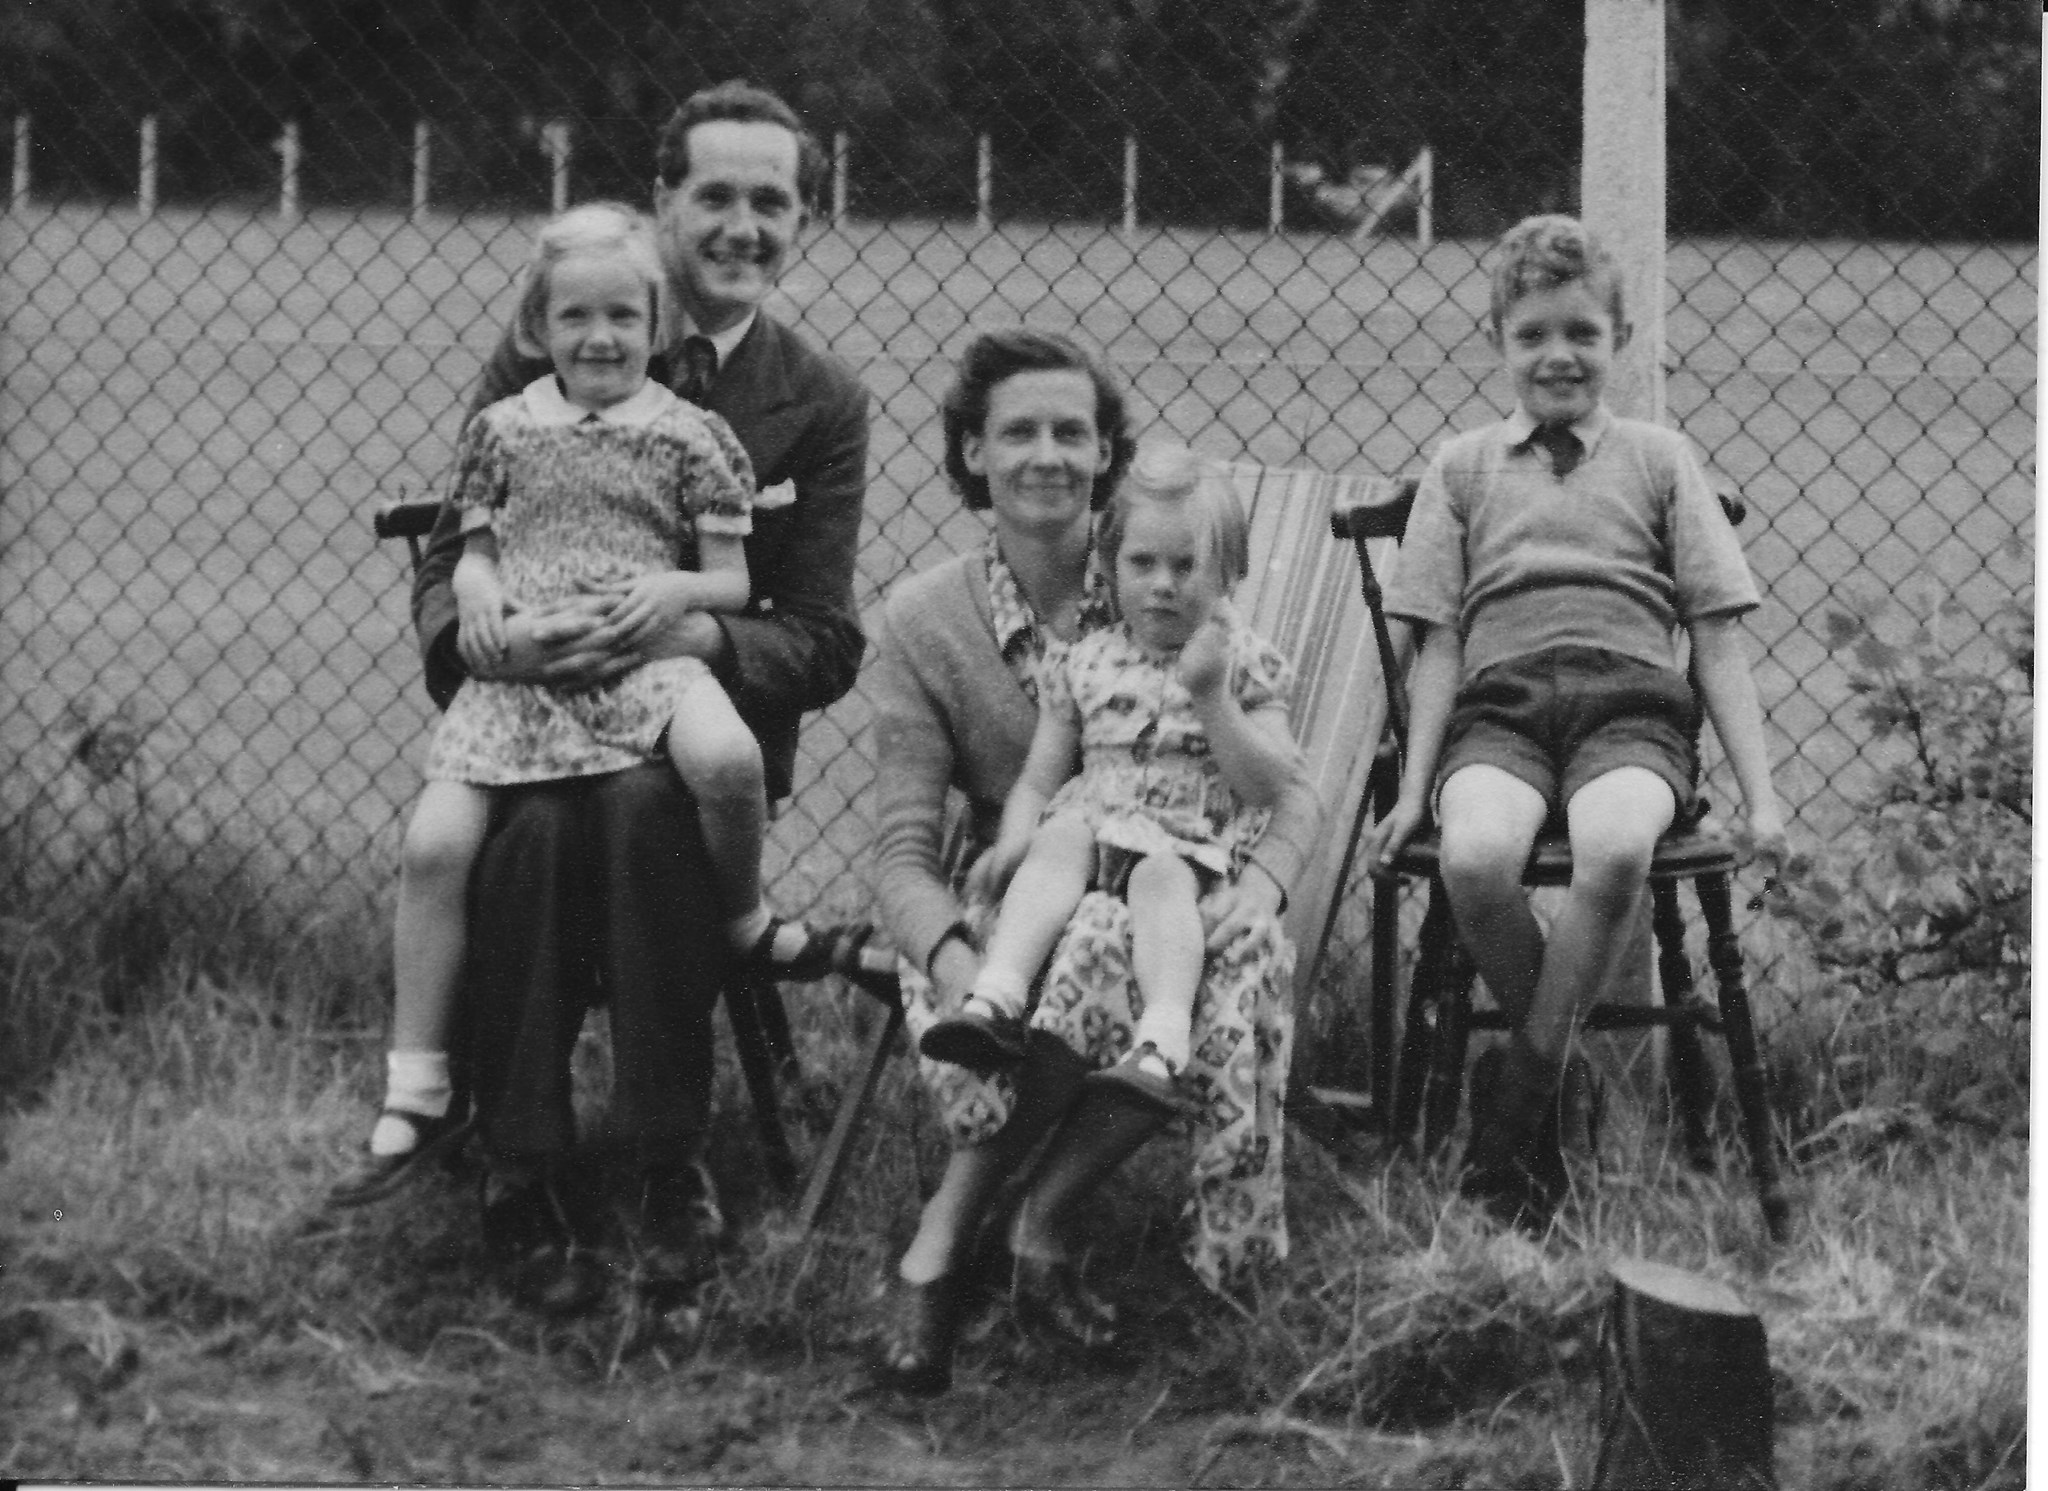 The Hanley family at Chilworth, summer 1953